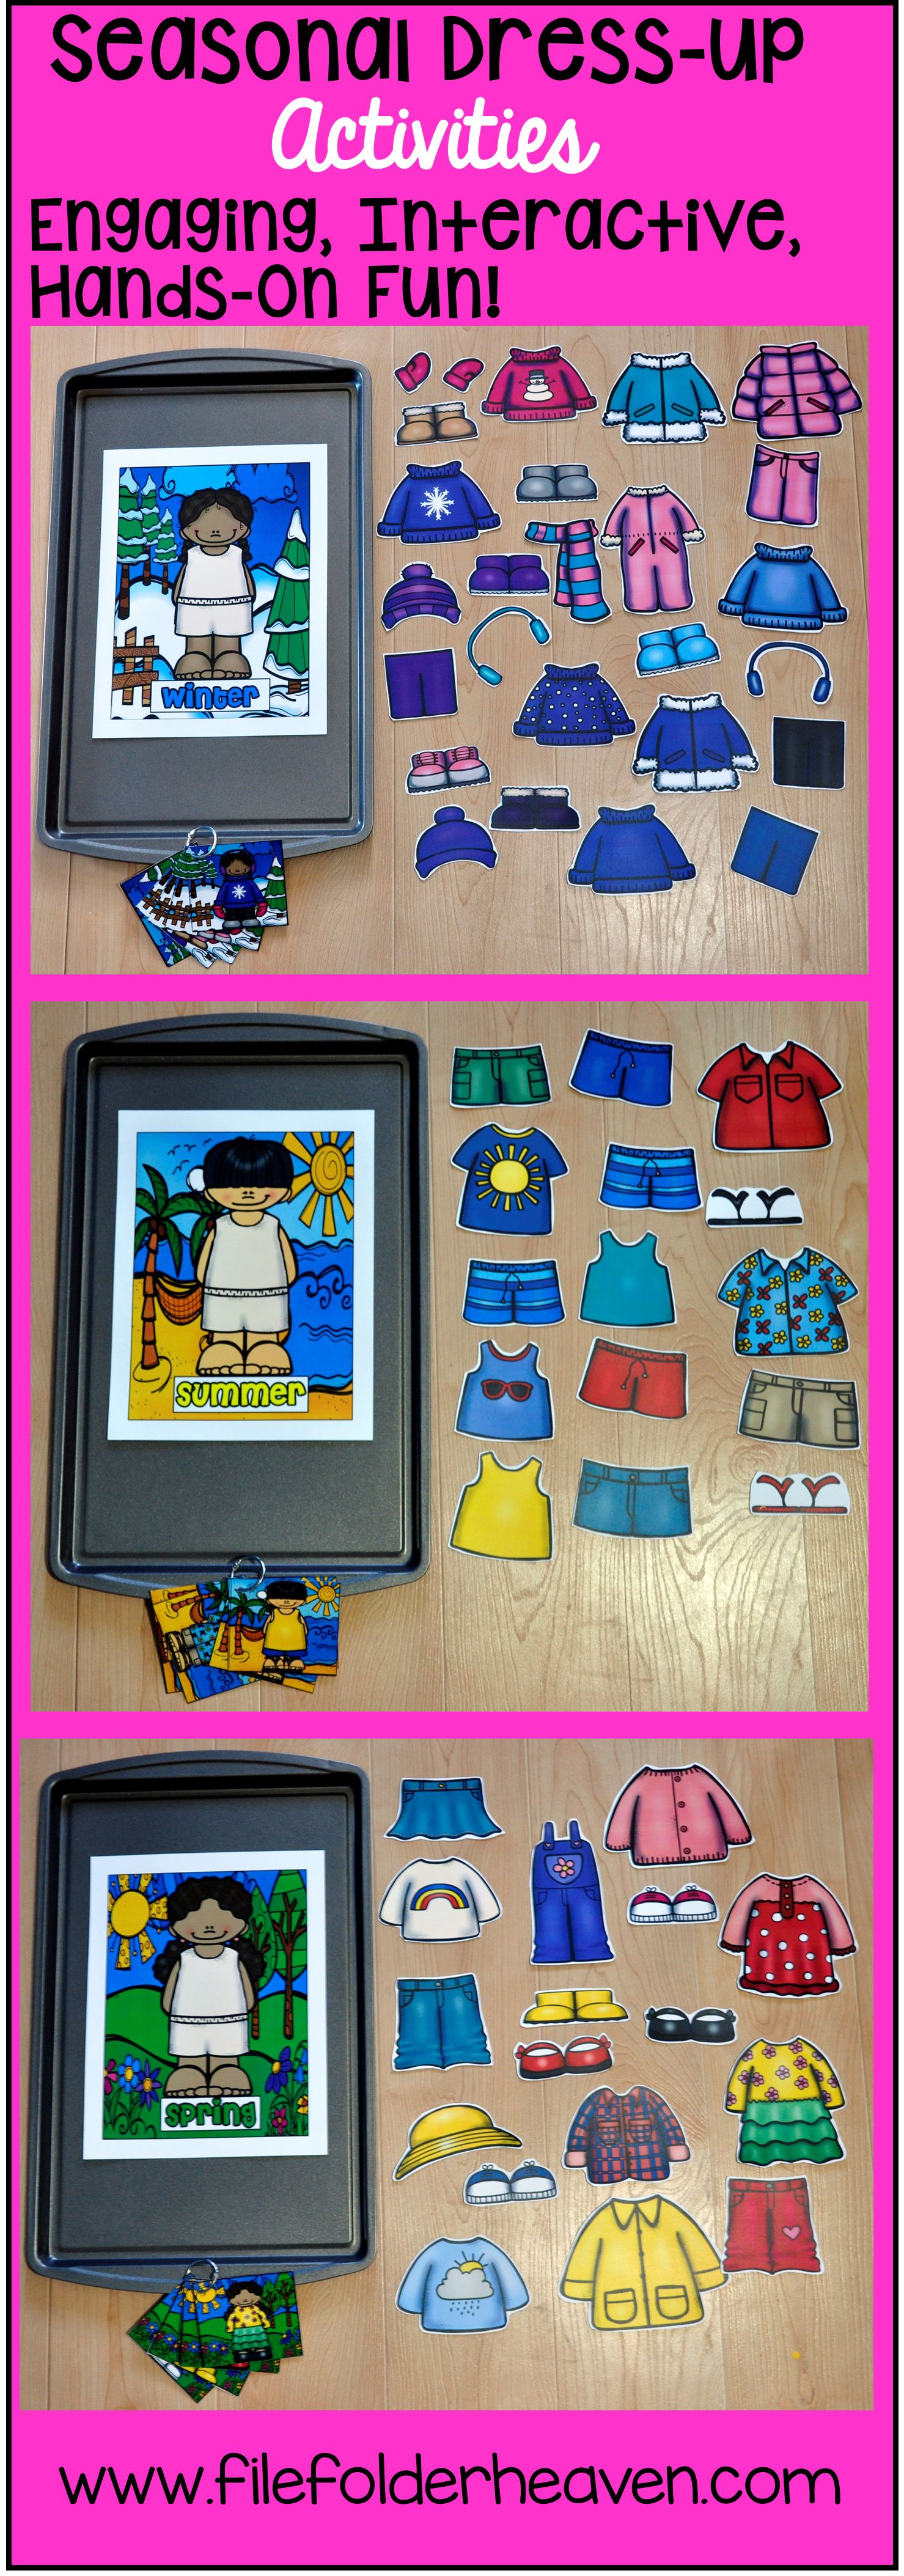 These Seasonal Dress Up Activities Can Be Used As Cookie